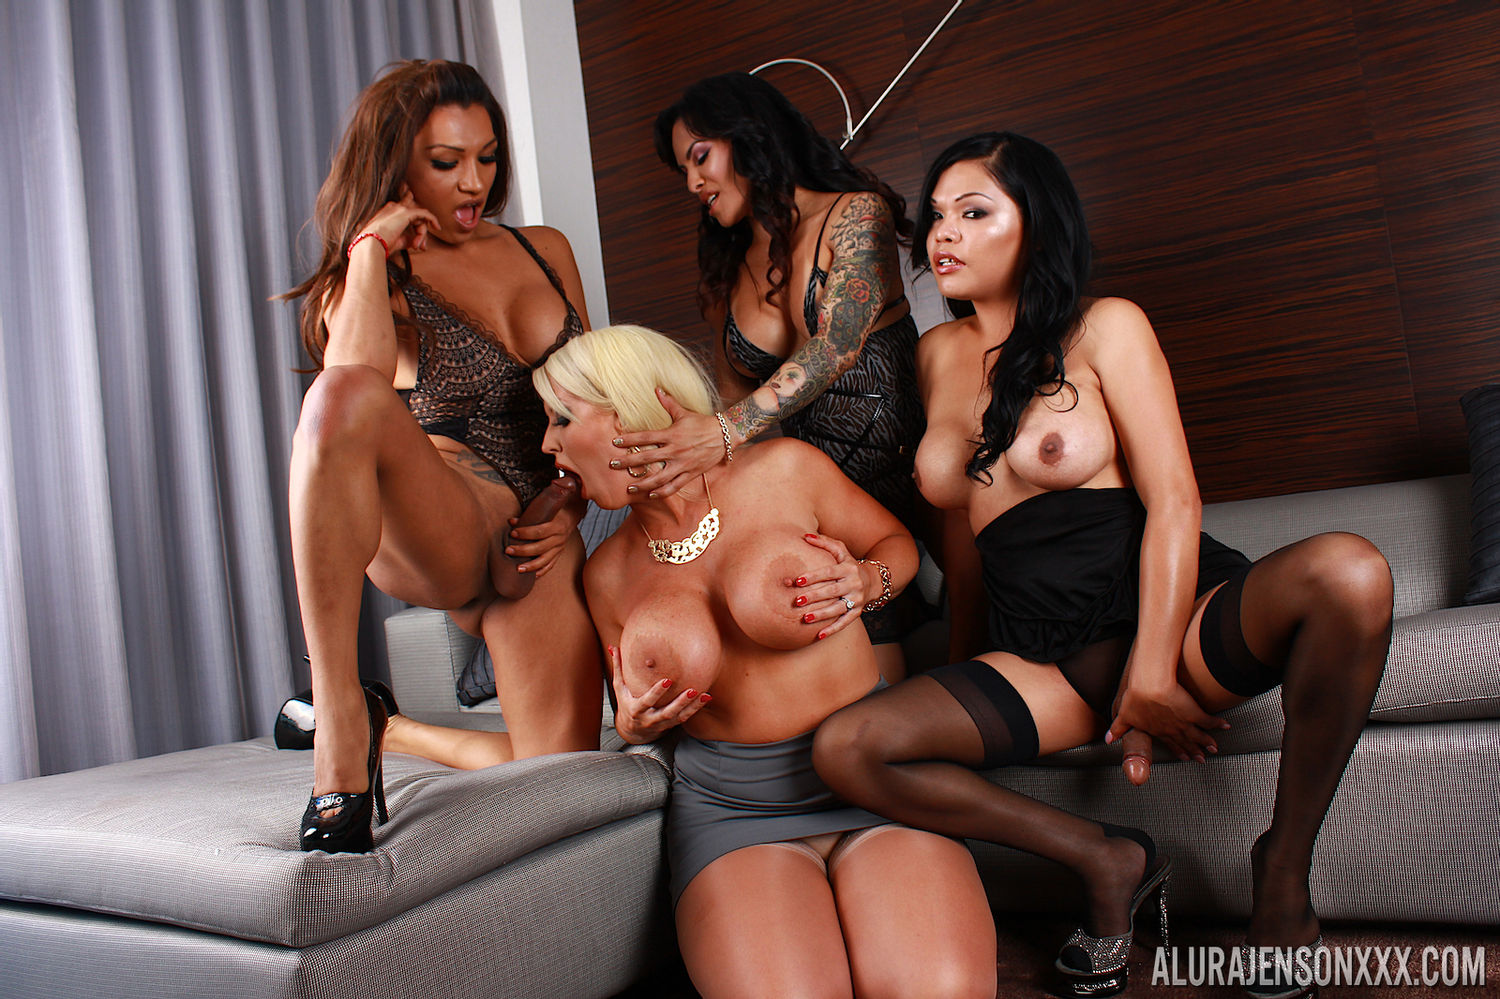 Blonde busty pornstar Alura TNT Jenson gives blowjob a trans beauty in a free foursome porn gall ...